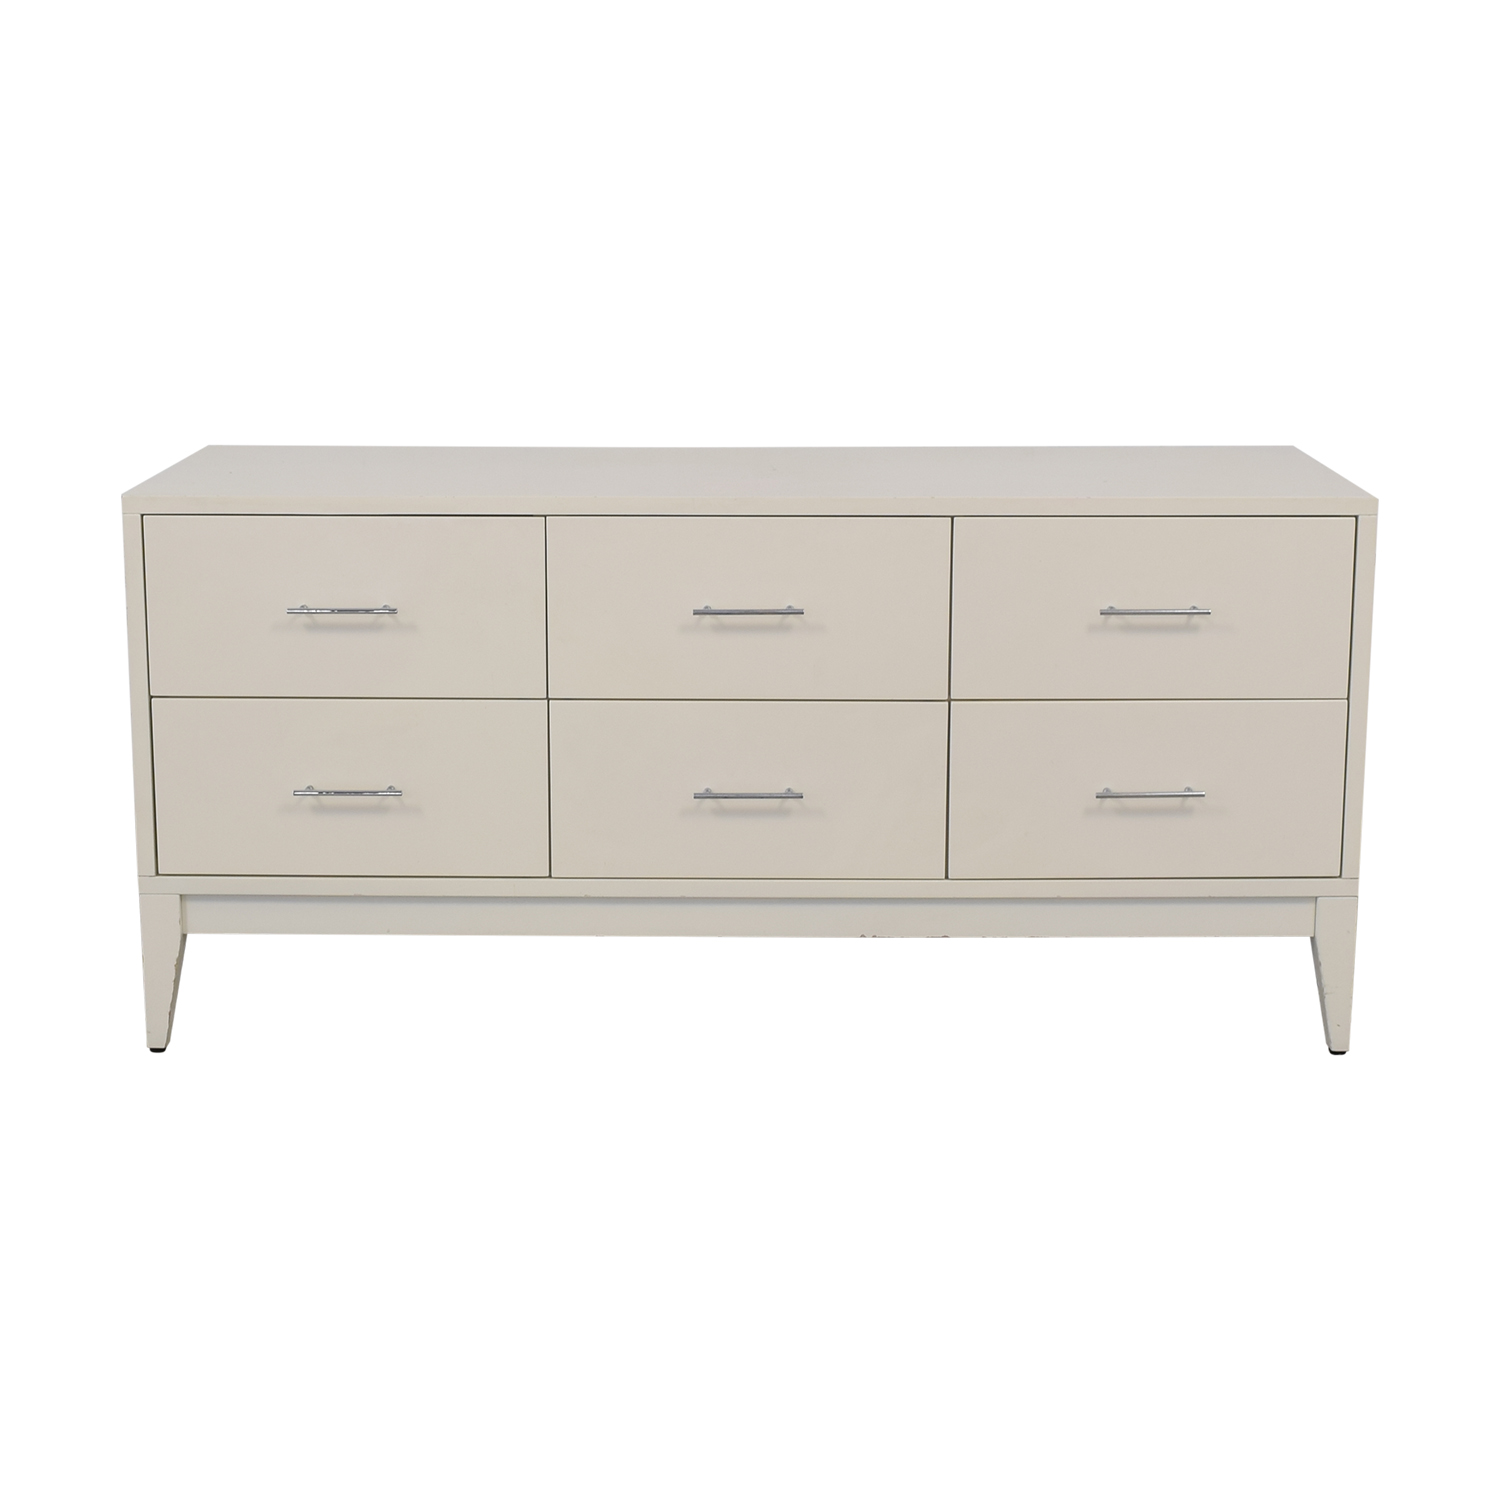 West Elm Narrow Leg Six Drawer Dresser sale